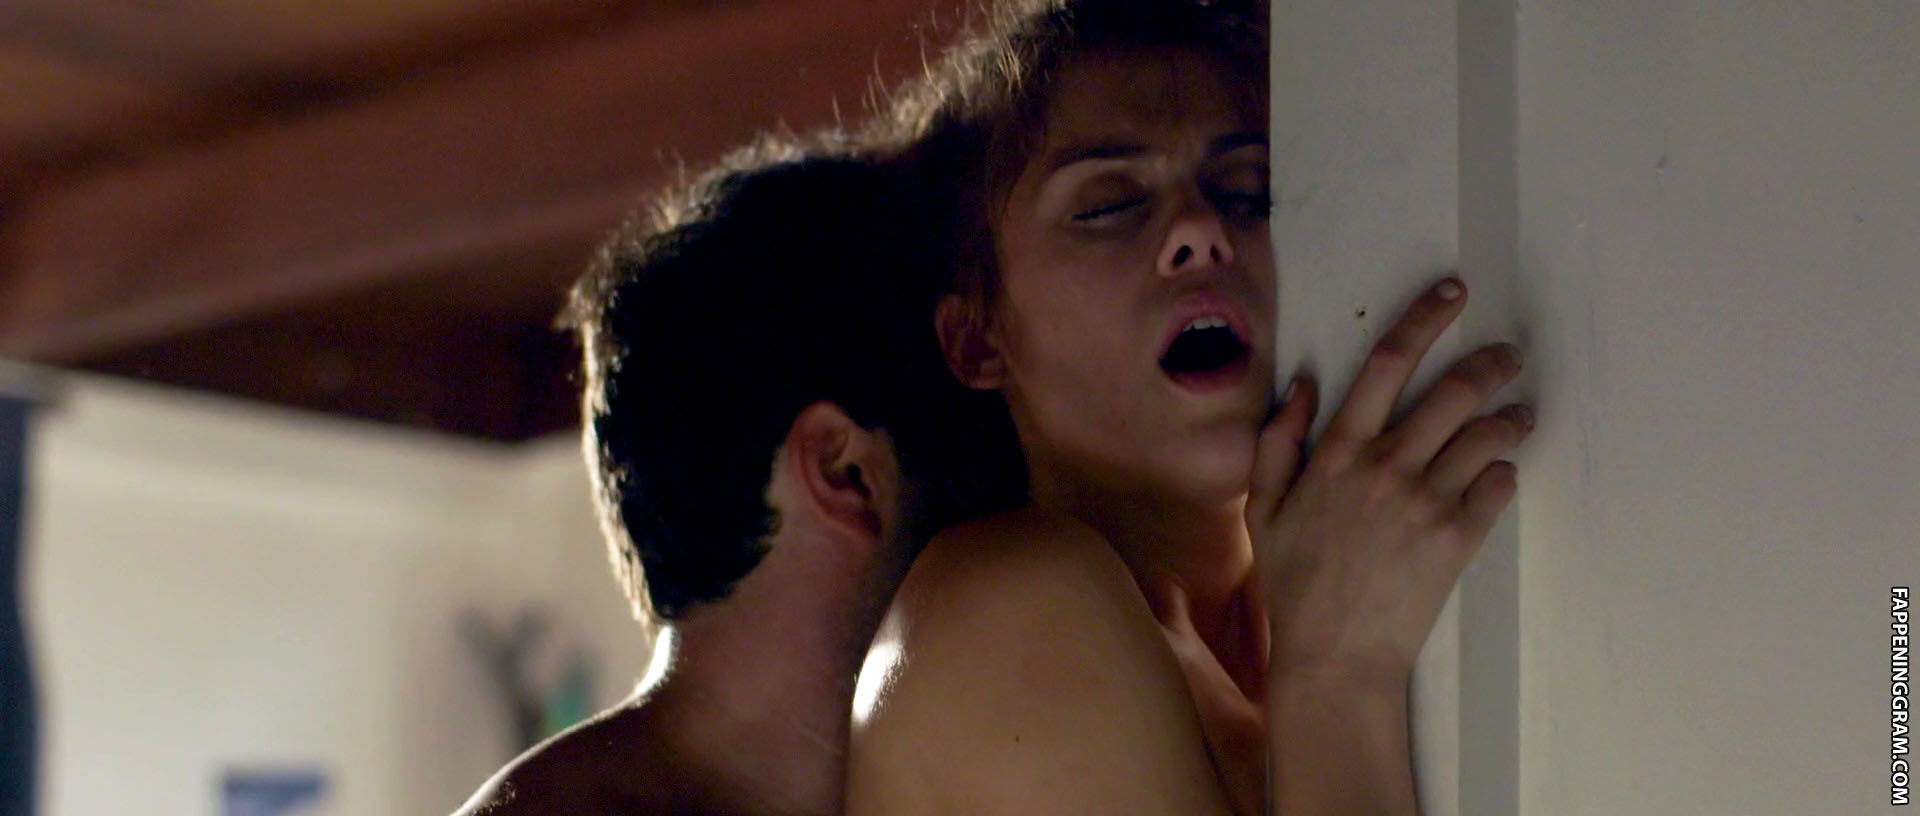 Lindsey shaw the fappening